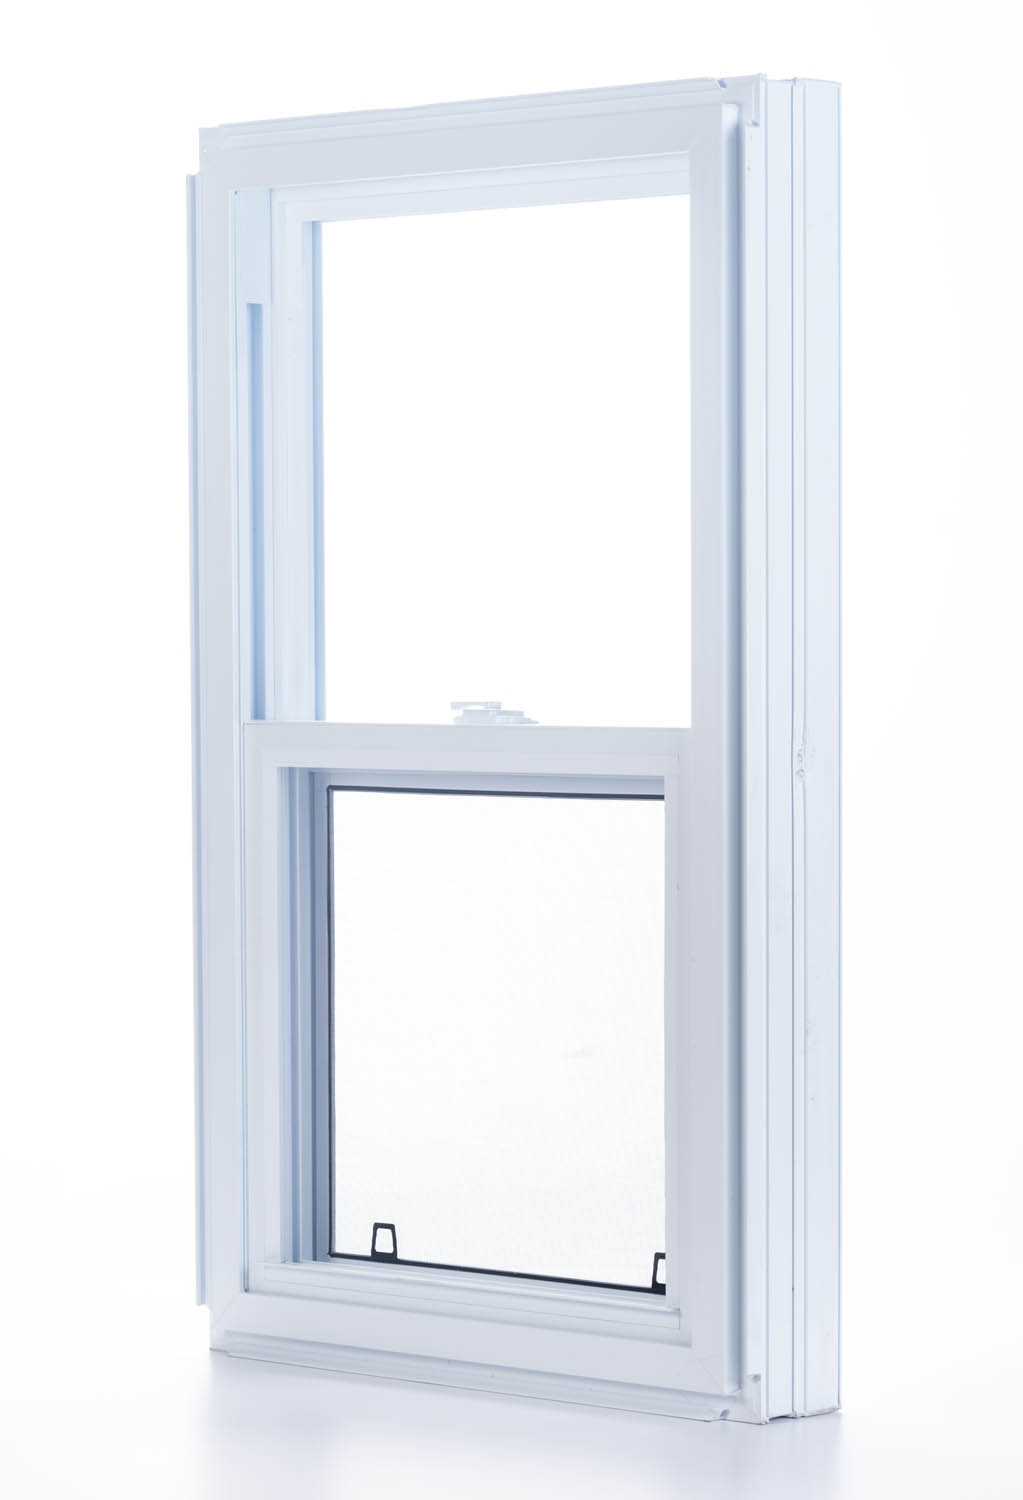 Fenplast Windows Review Single Hung Windows Portes Et FenÊtres PrÉsident